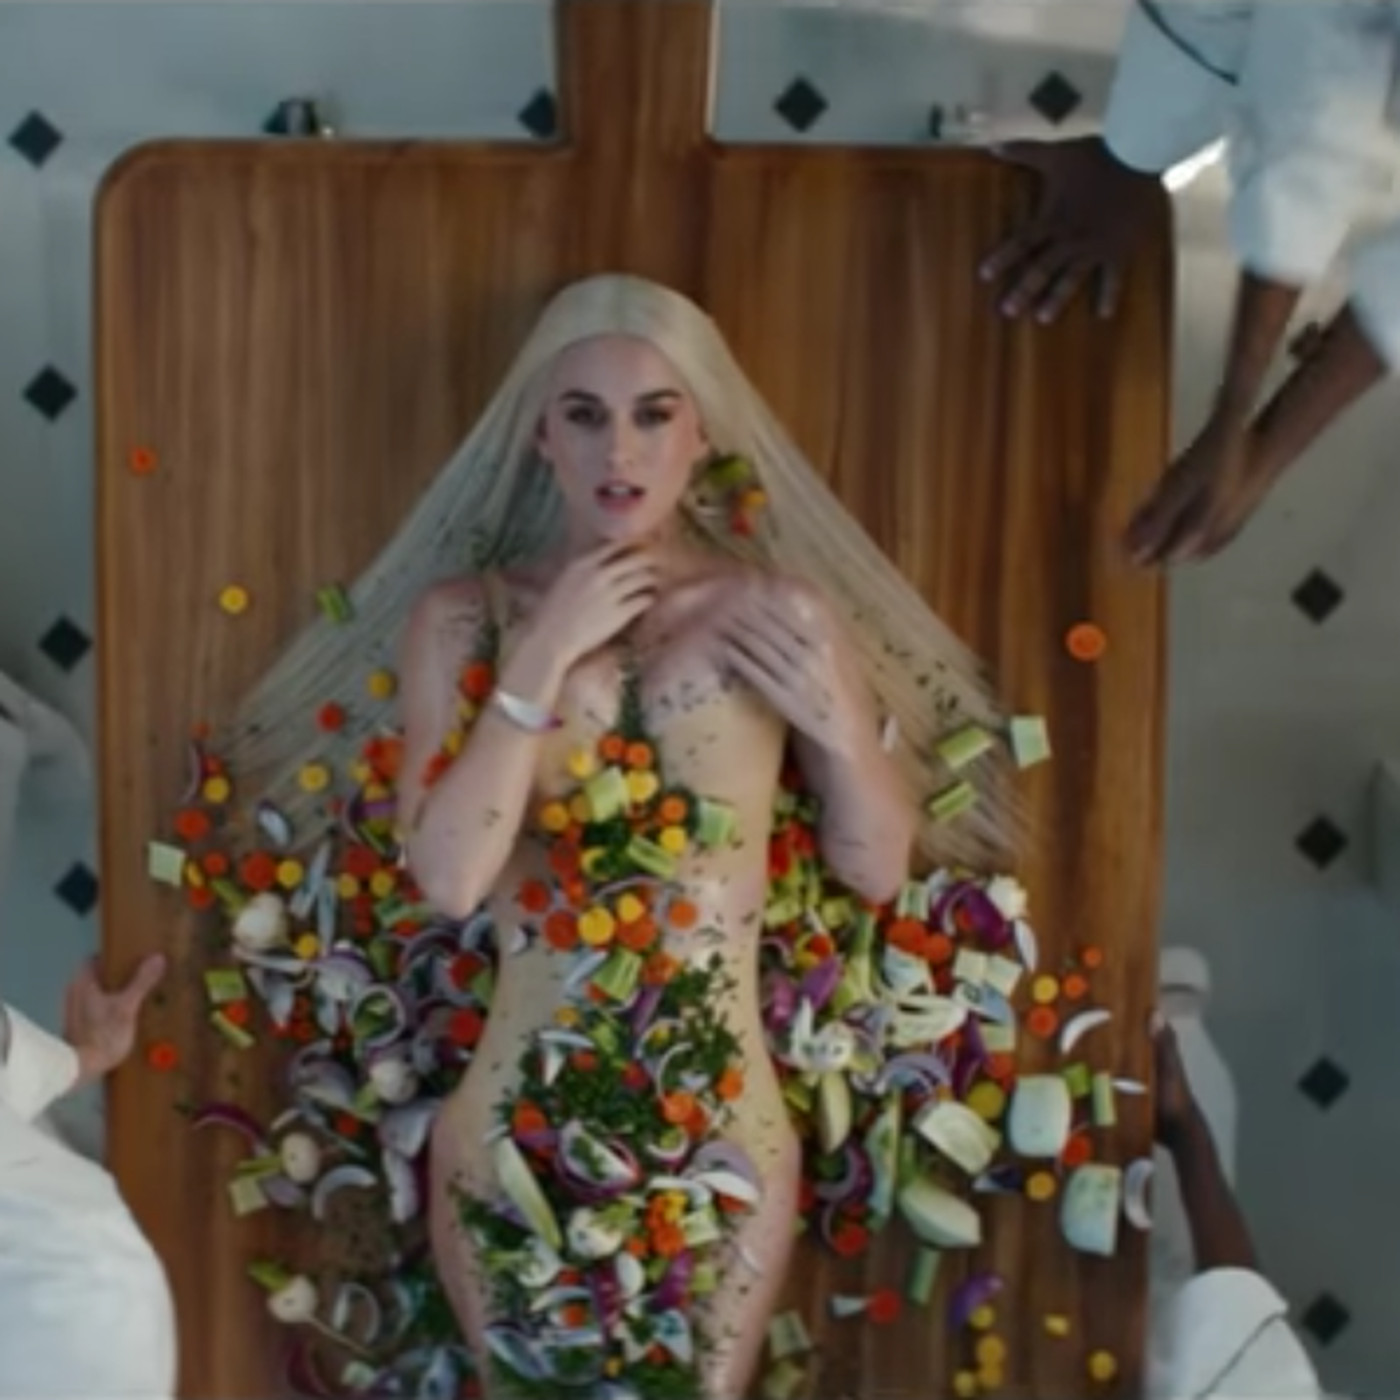 Katy Perry's New Cooking-Themed Video Is Extremely Upsetting - Eater